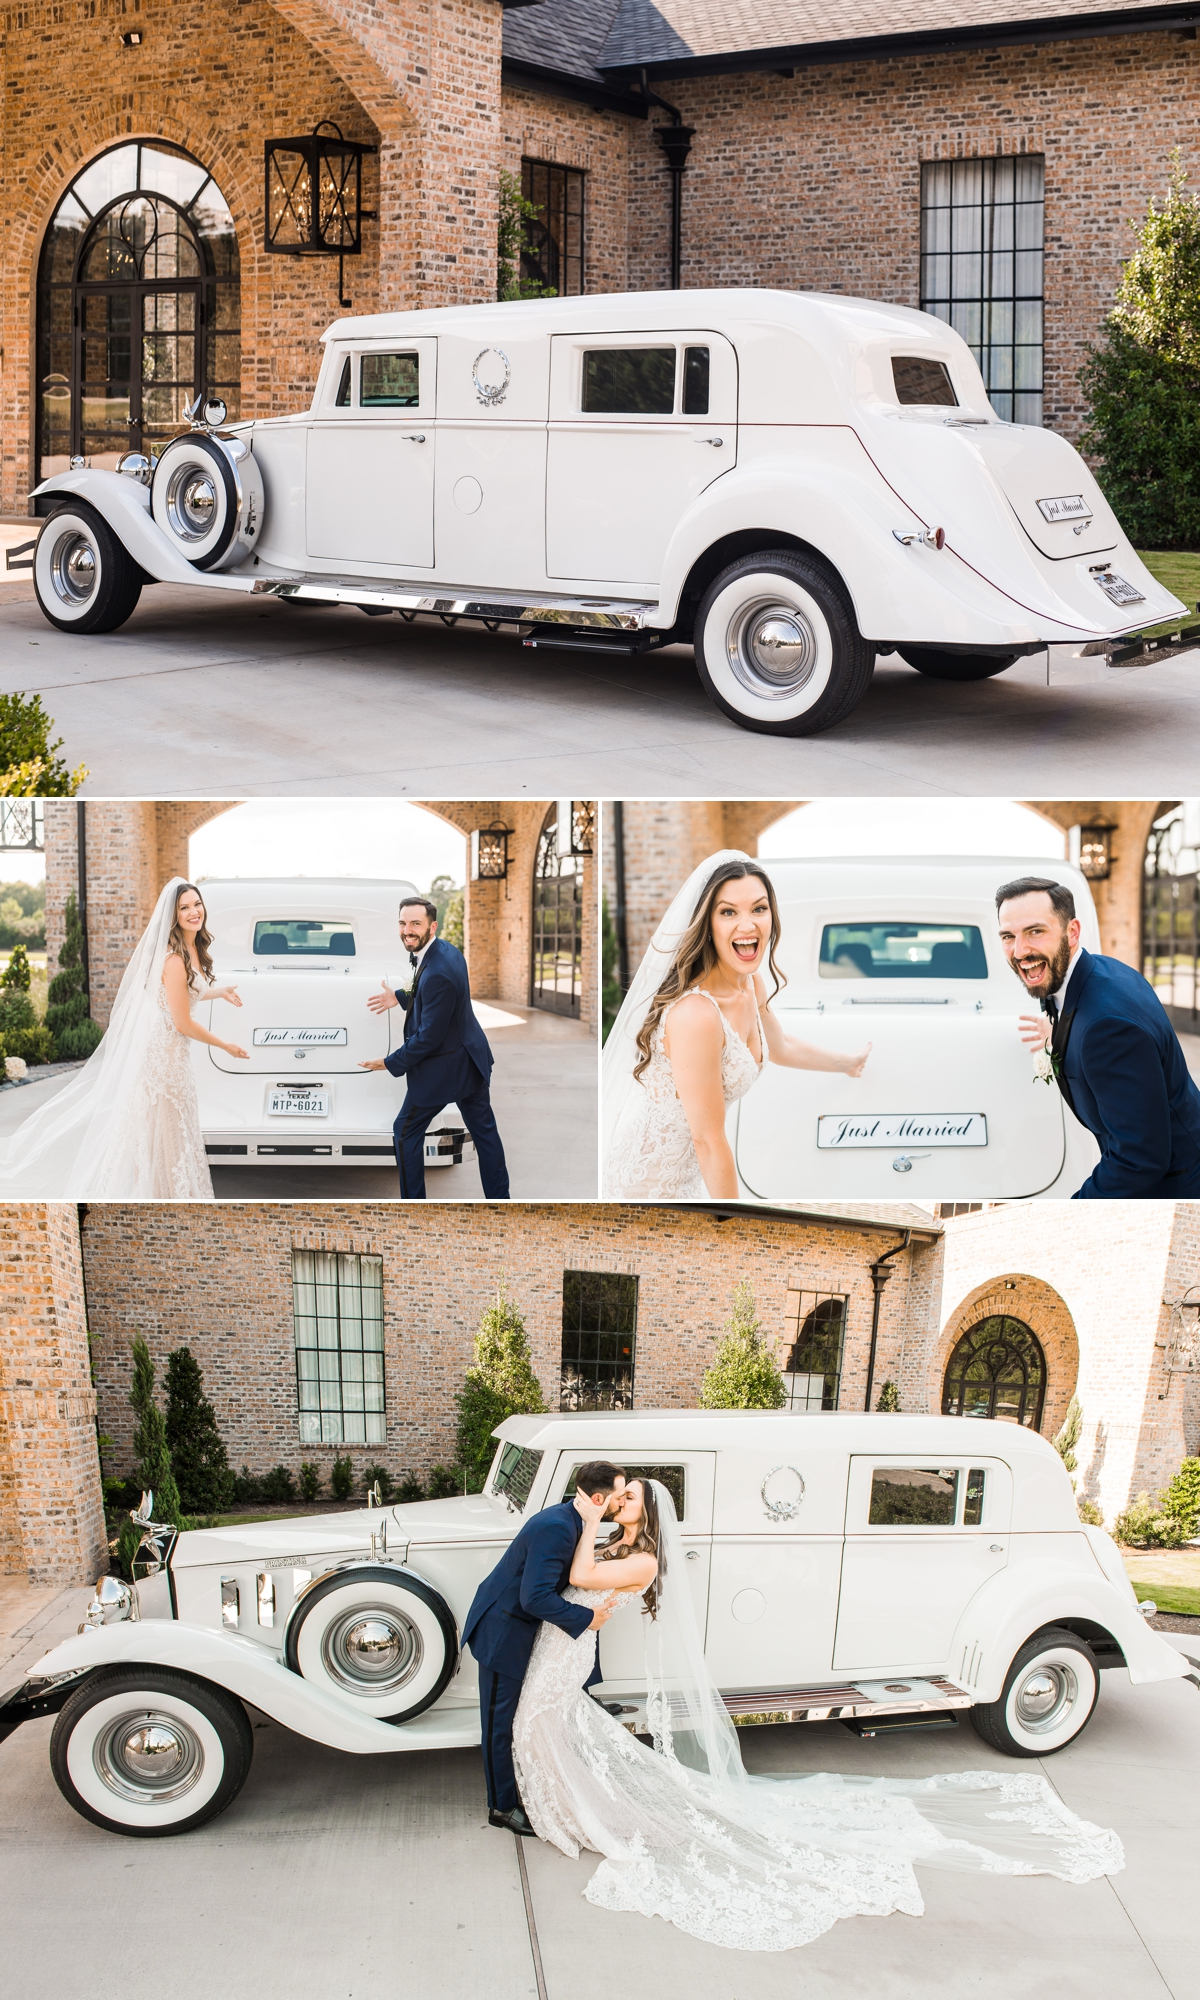 Bride and Groom with Getaway Car at Iron Manor